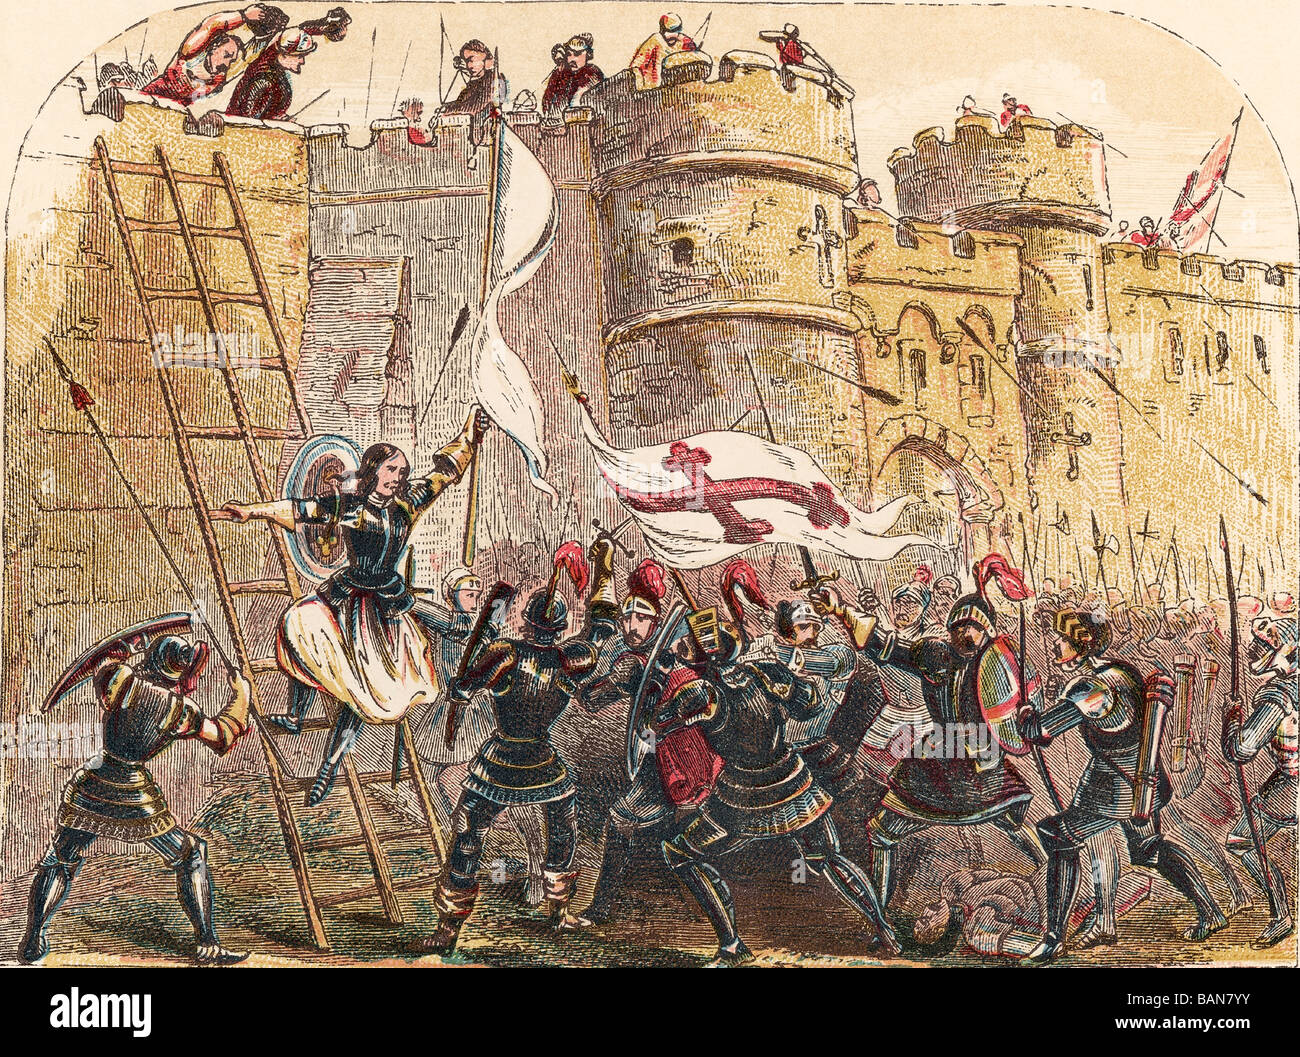 Joan of Arc leads French army against English defenders of Les Tourelles gate in siege of Orleans, May 7, 1429. - Stock Image